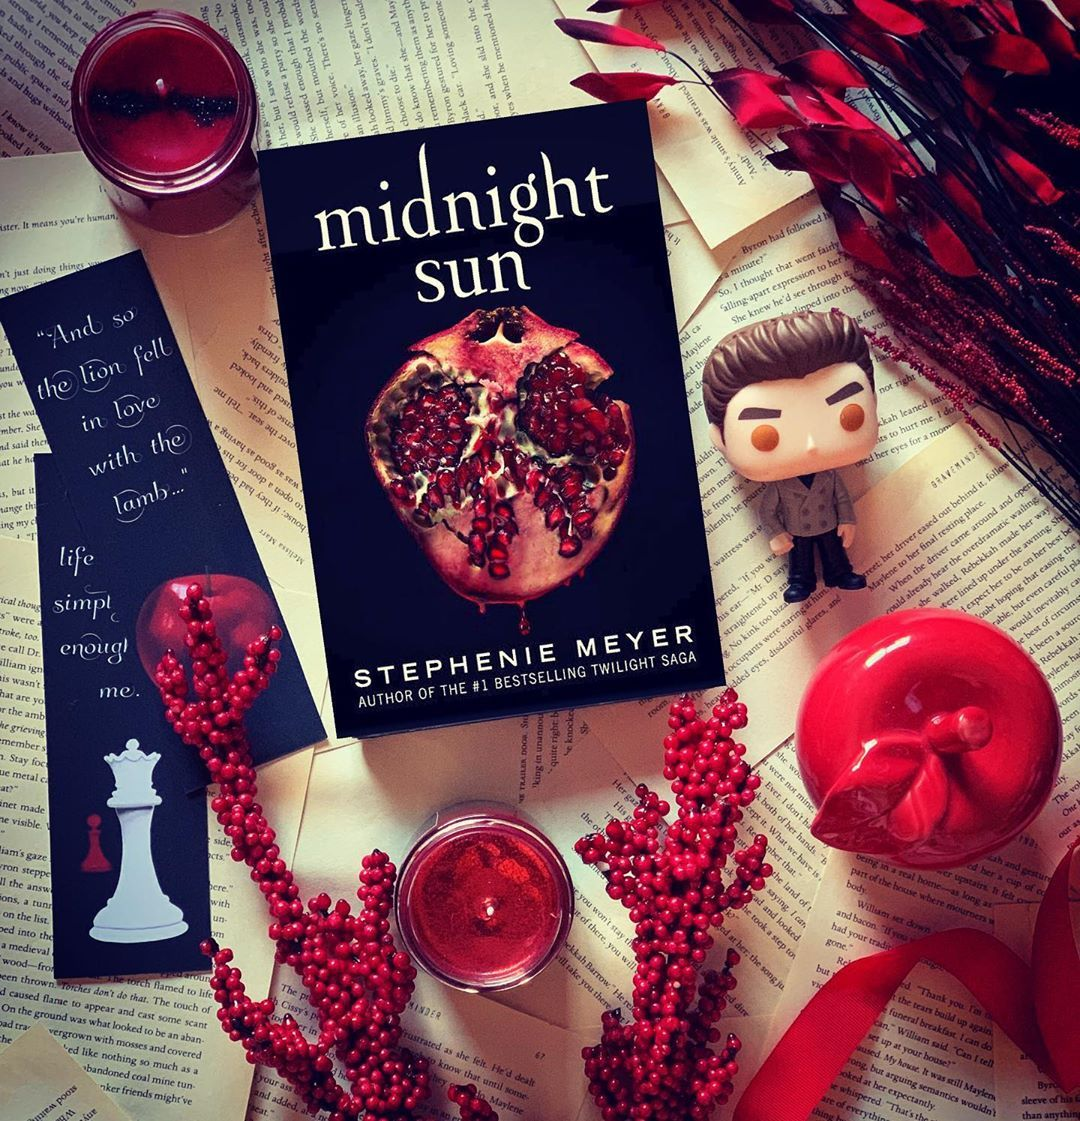 1 820 Likes 84 Comments Sam The Fangirl Sam The Fangirl On Instagram Qotd What Book Are You Eagerl In 2020 Midnight Sun Twilight Twilight Saga Twilight Book